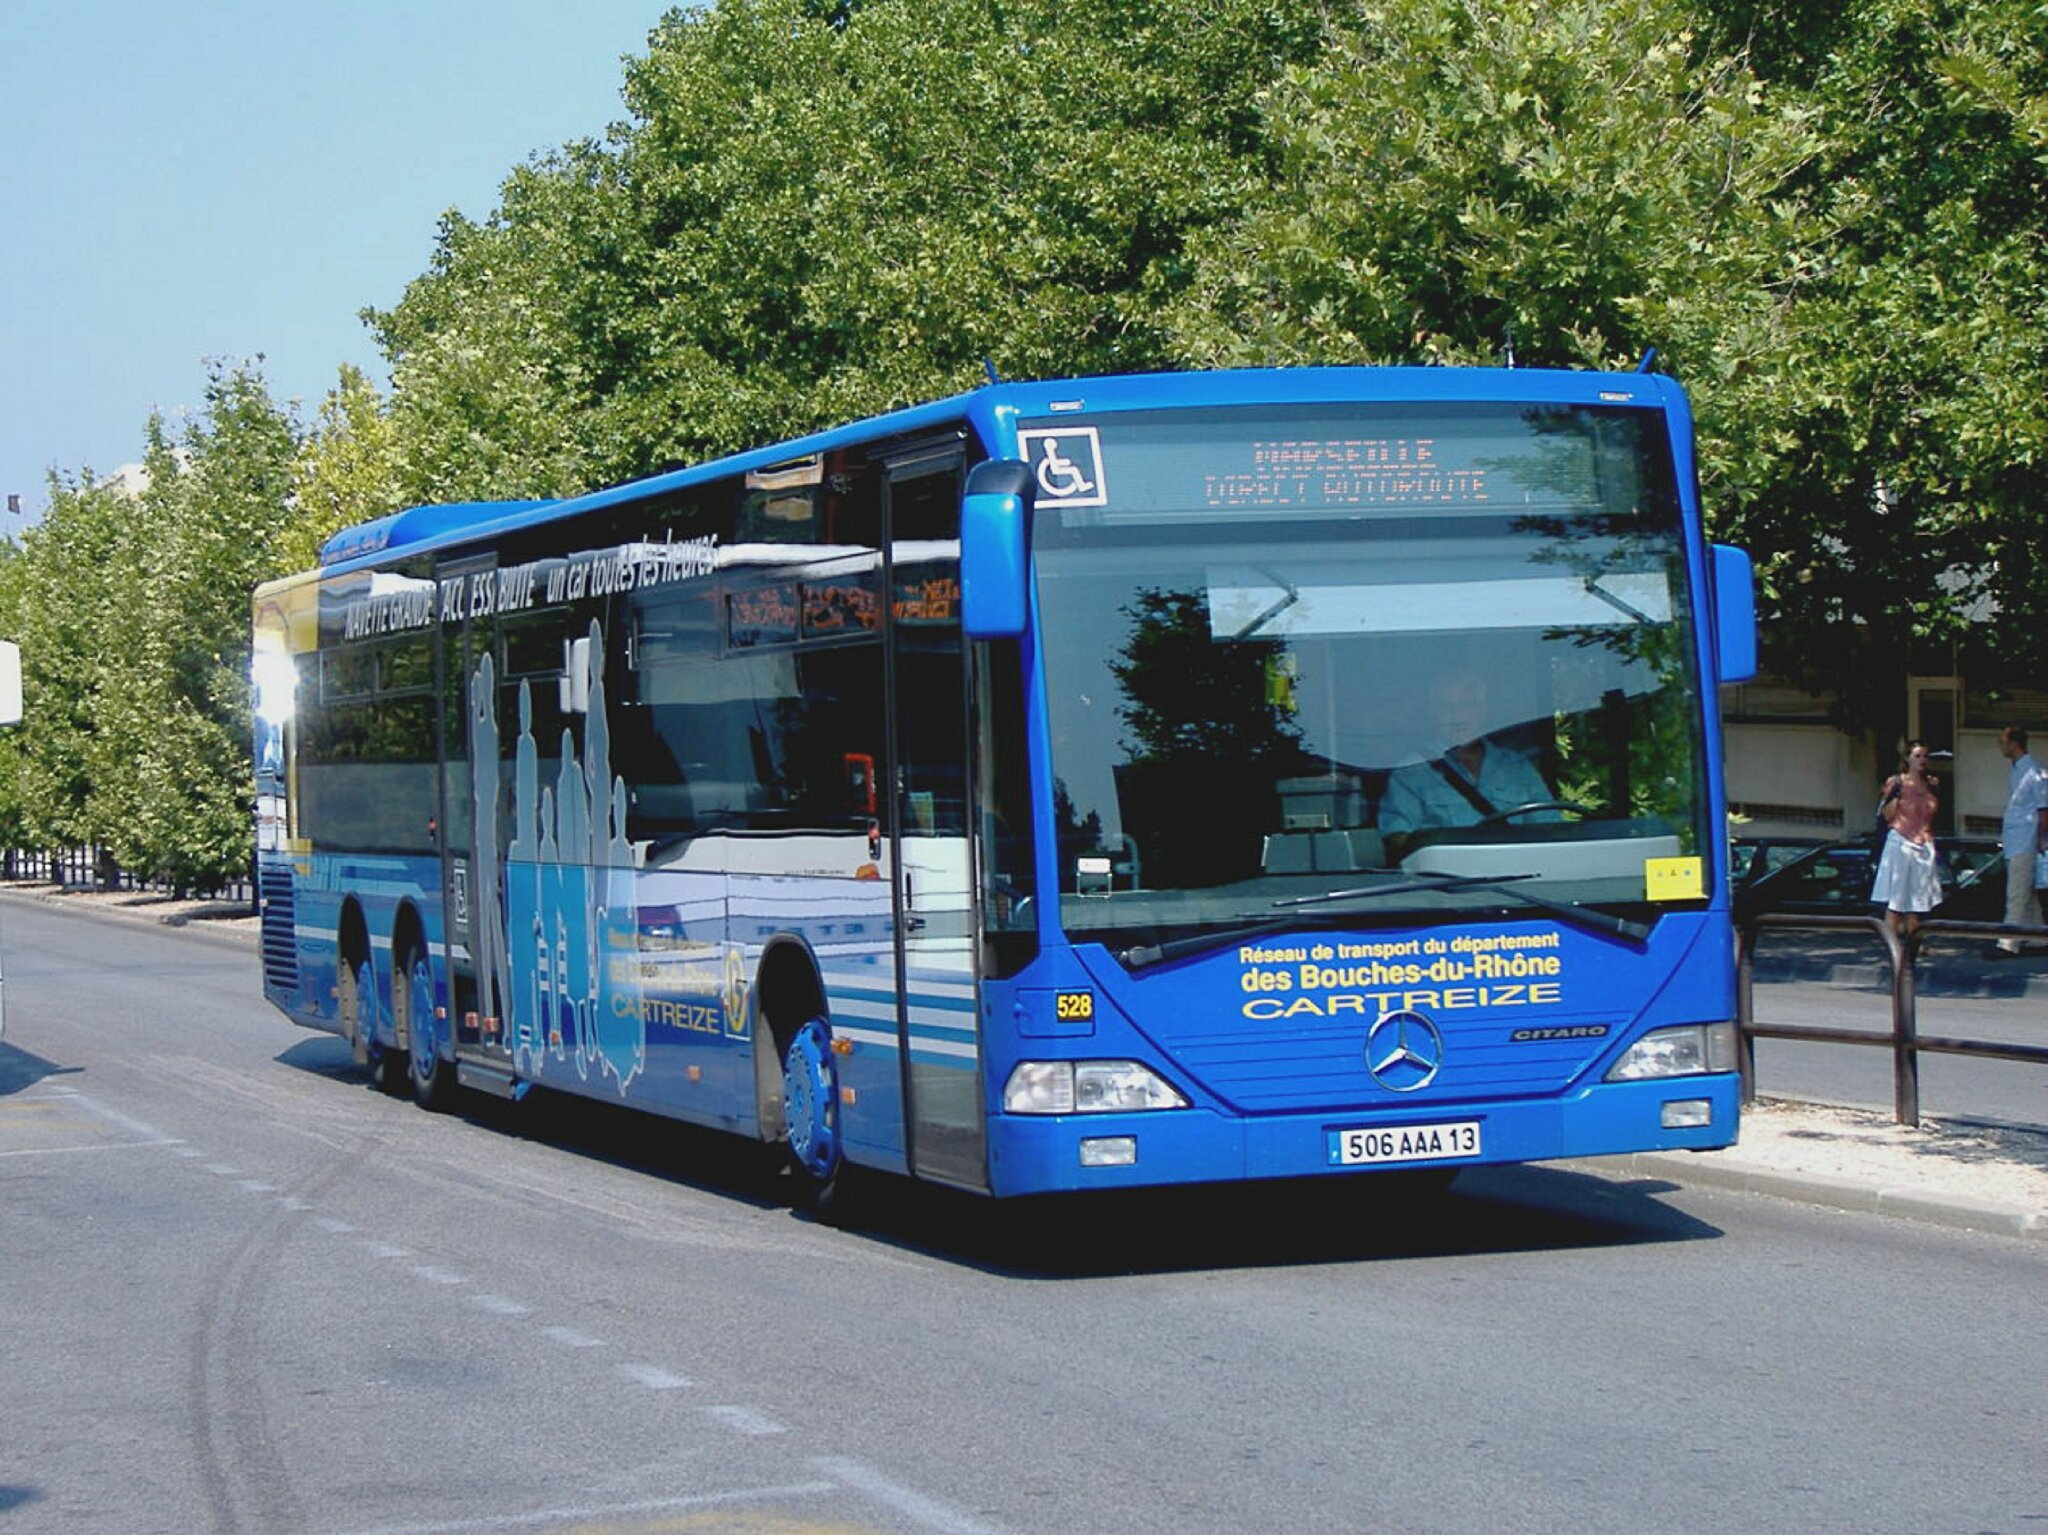 Lignes secondaires r gionales une affaire de co t - Salon de provence aix en provence bus ...